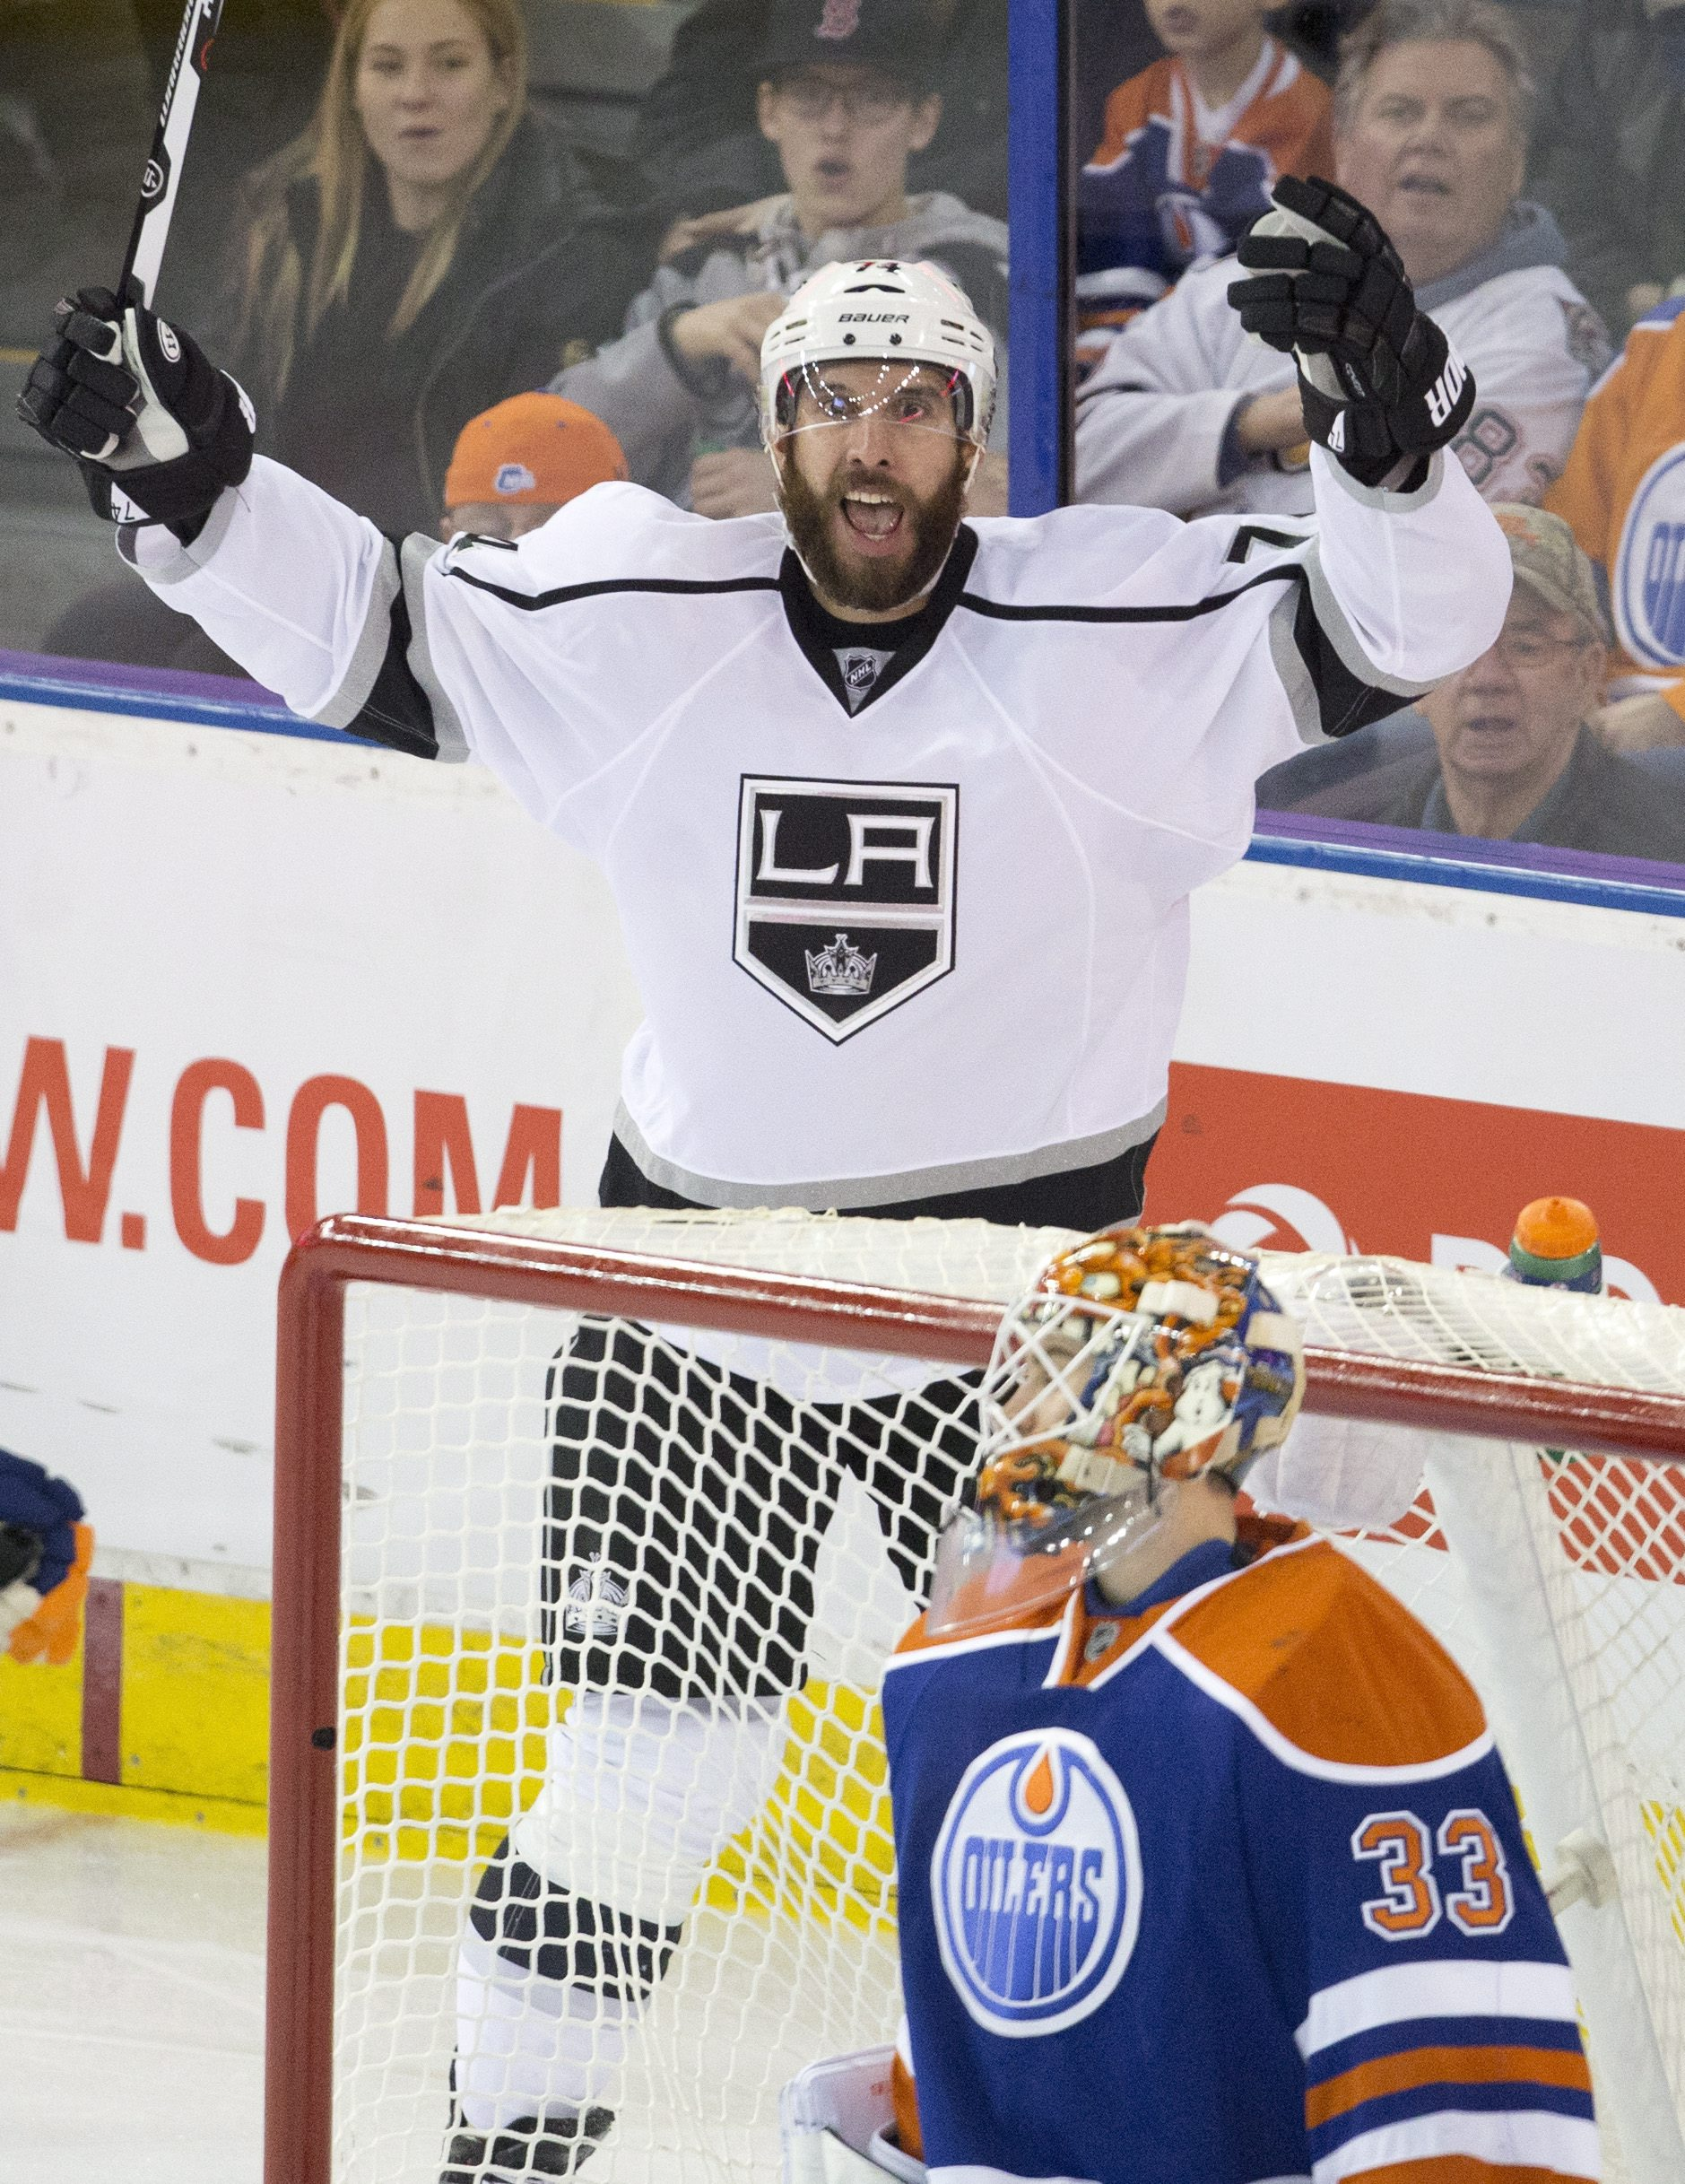 Los Angeles Kings' Dwight King (74) celebrates a goal against Edmonton Oilers' goalie Cam Talbot (33) during the second period of an NHL hockey game in Edmonton, Alberta, Tuesday, Dec. 29, 2015. (Janson Franson/The Canadian Press via AP) MANDATORY CREDIT